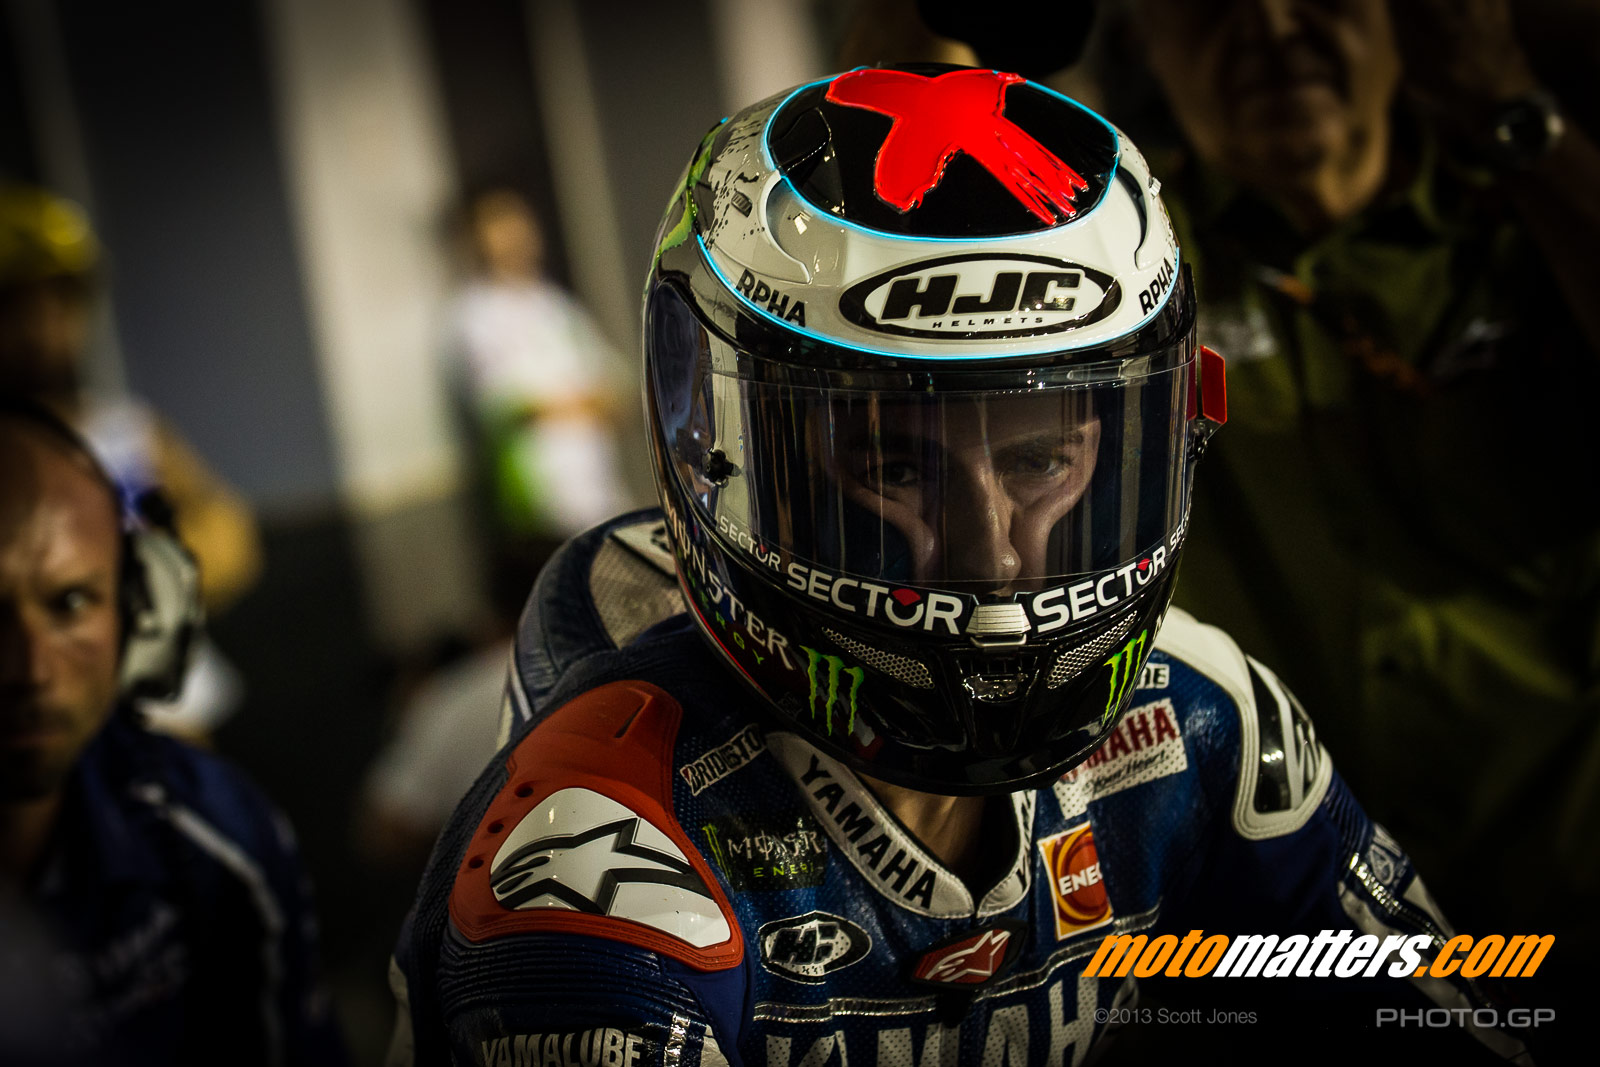 [GP] Qatar - Page 2 2013-MotoGP-01-Qatar-Thursday-0380-O